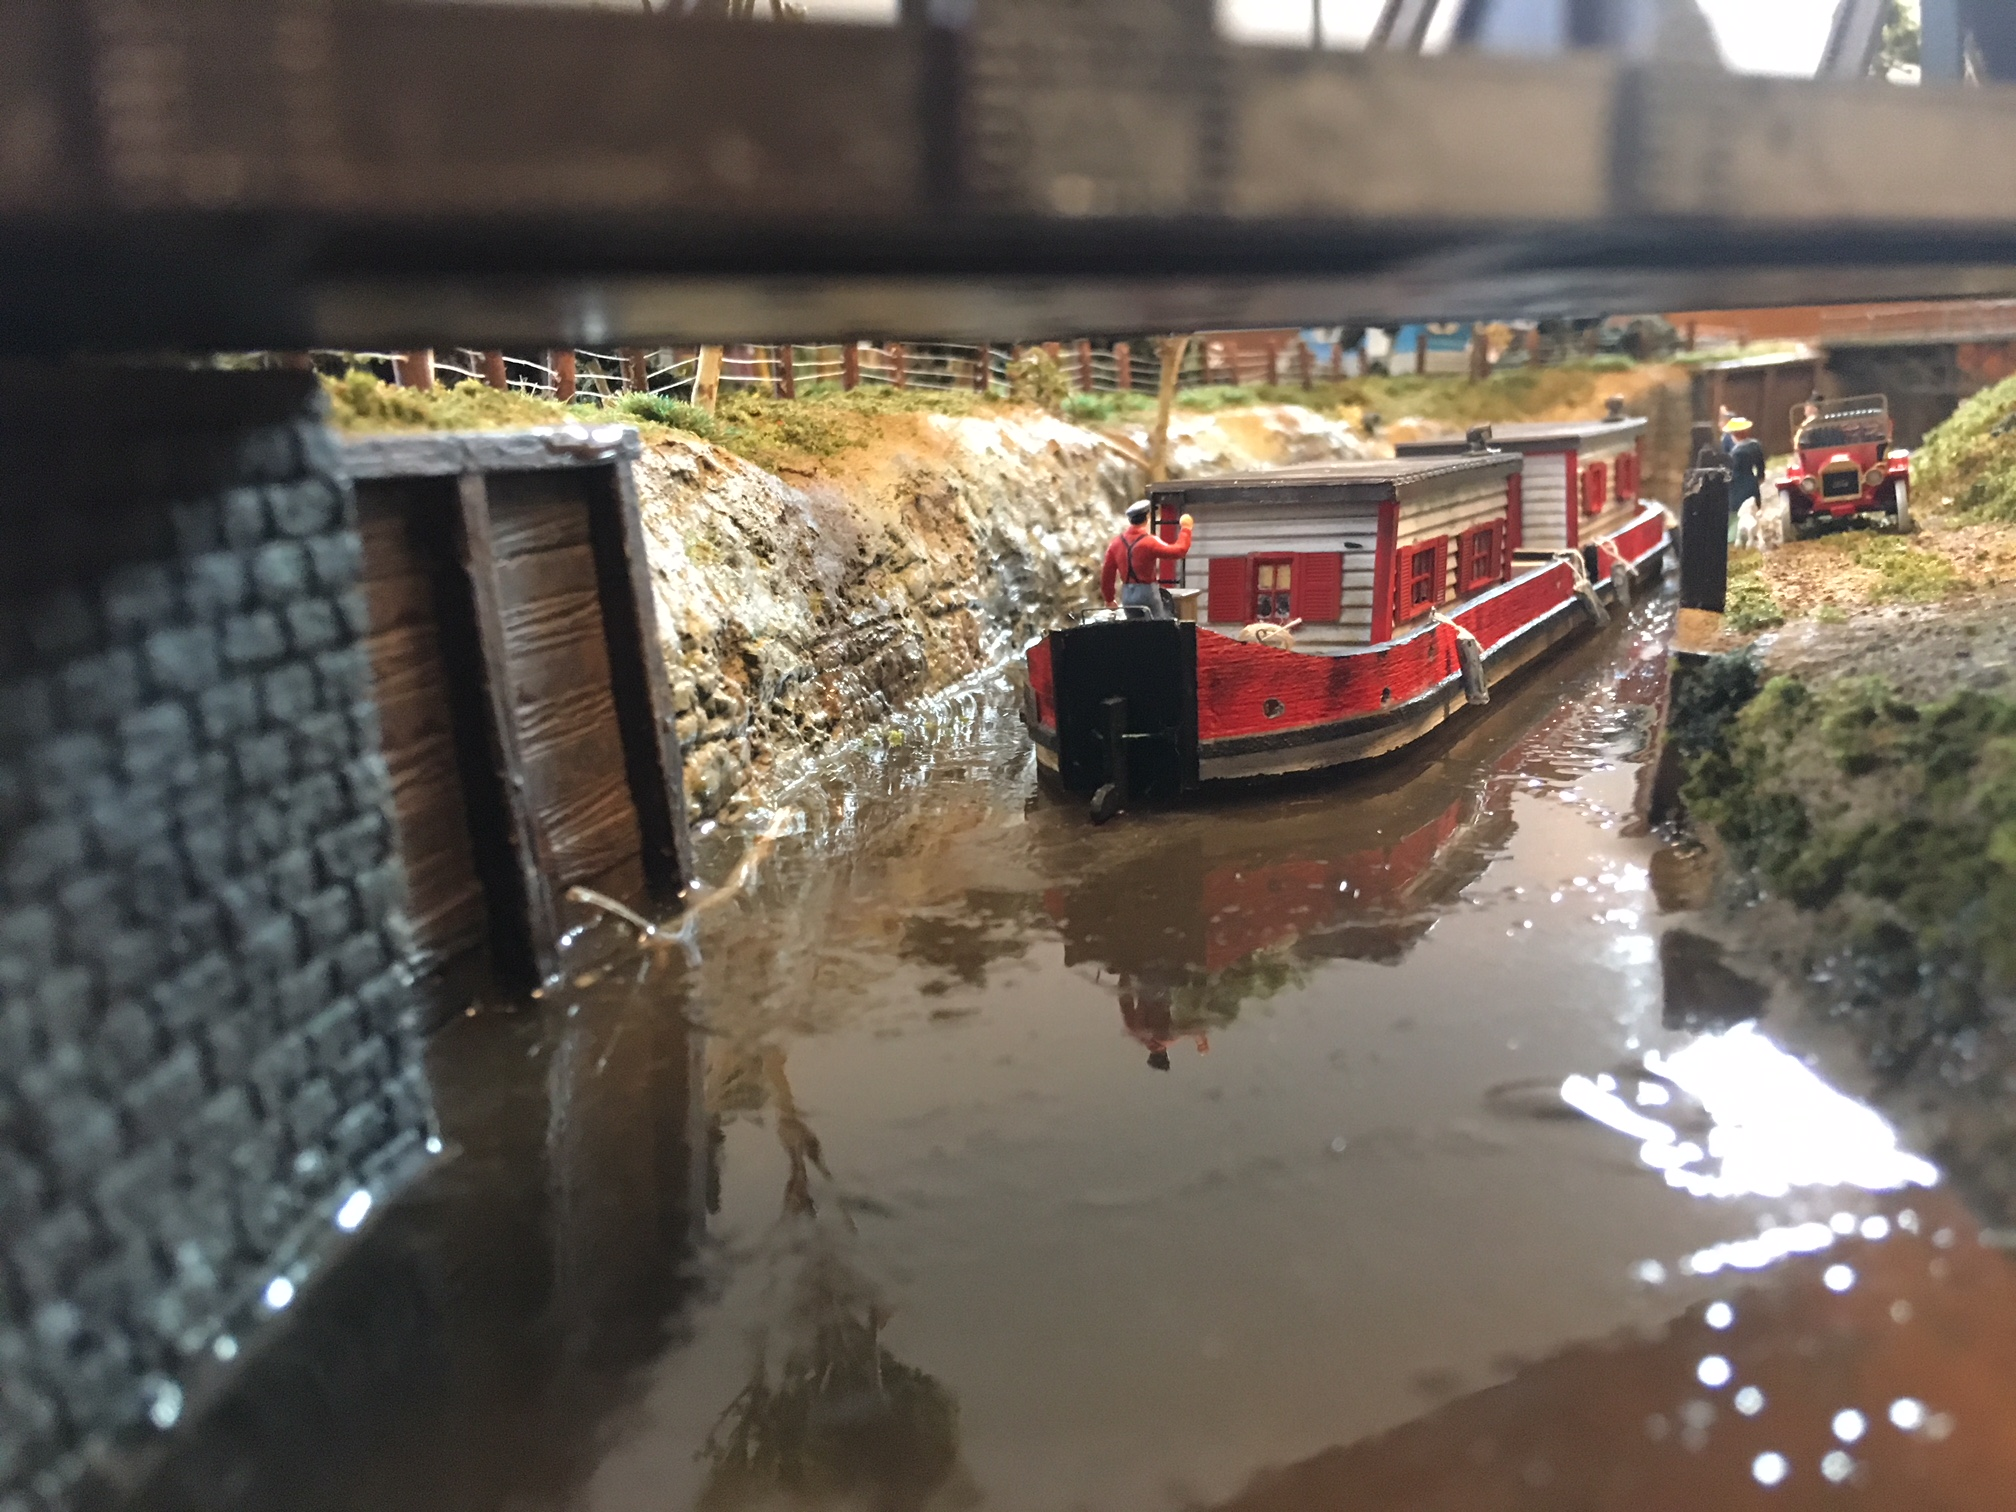 model railroad canal scene